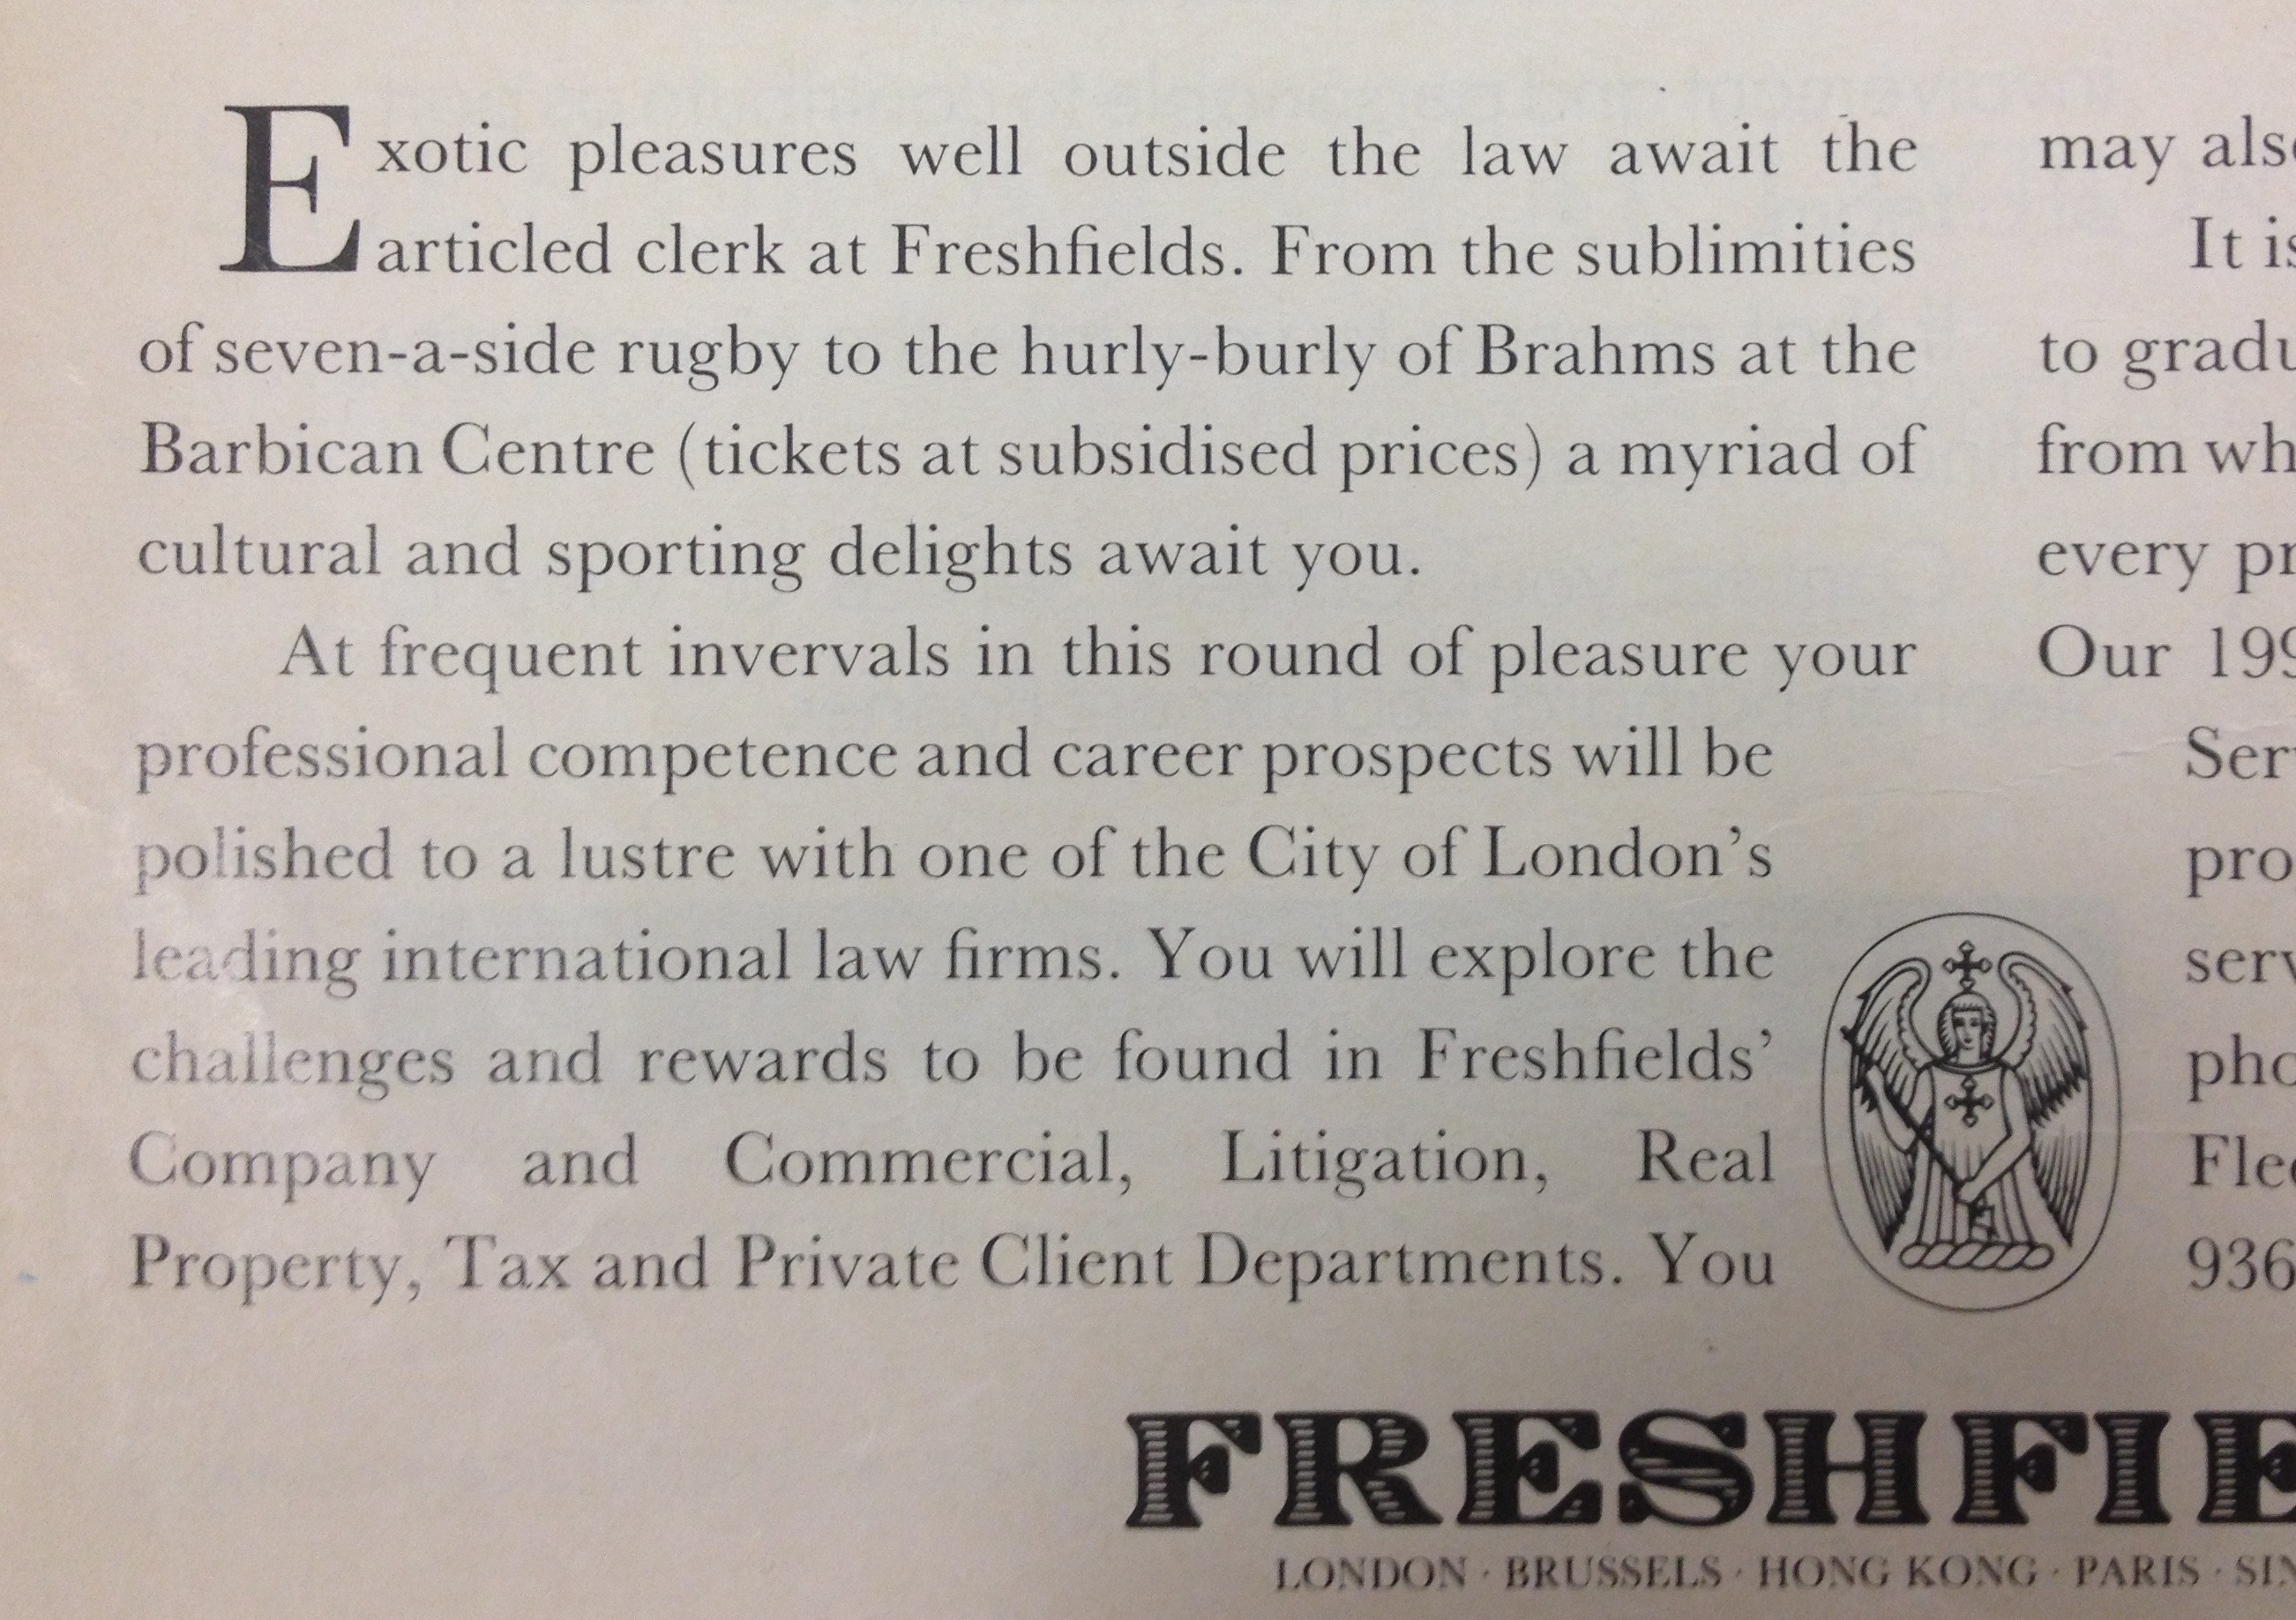 Freshfields blurb